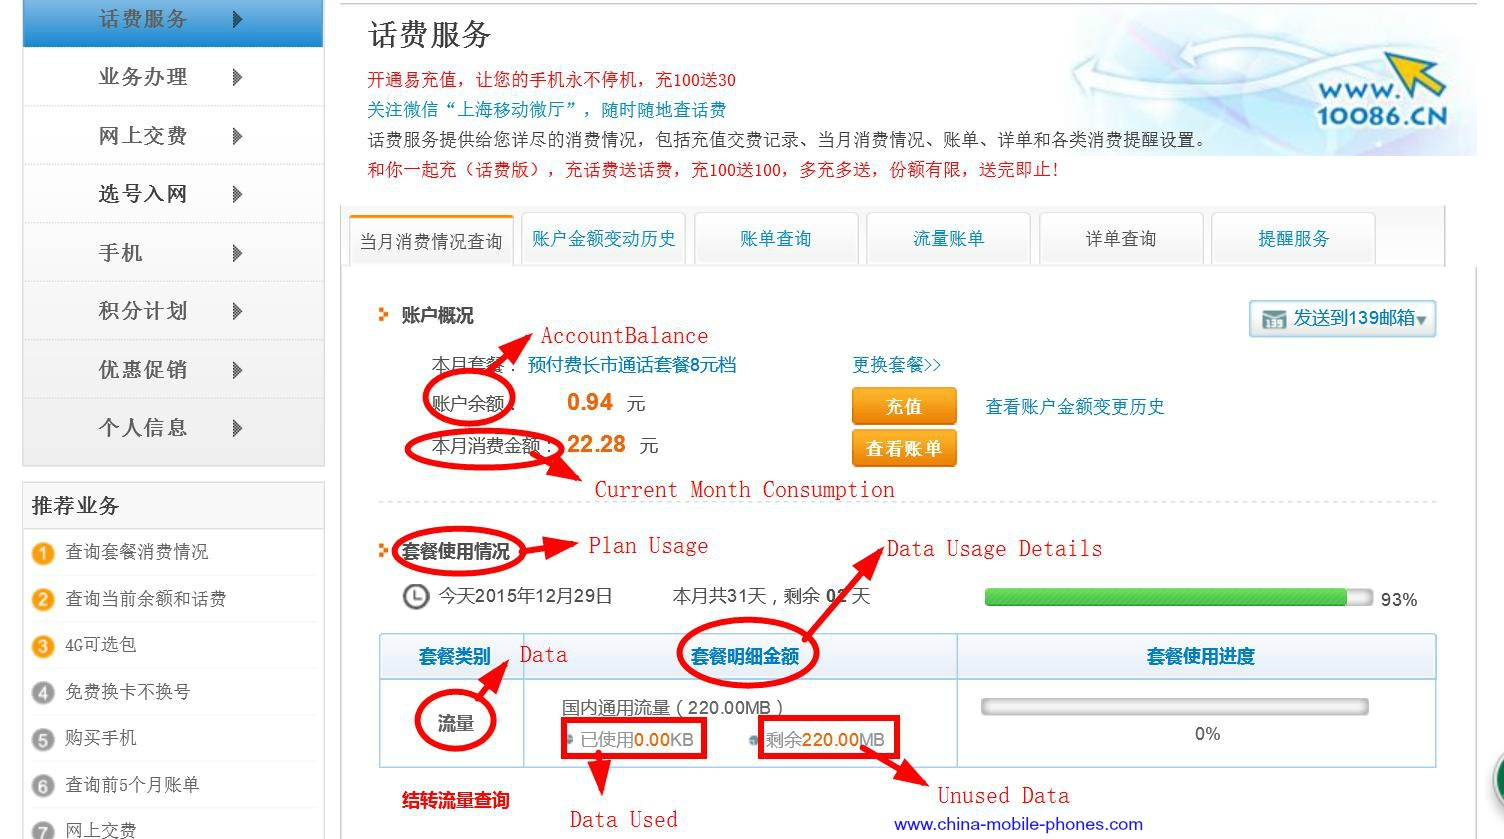 China Mobile Data and Call Usage Details